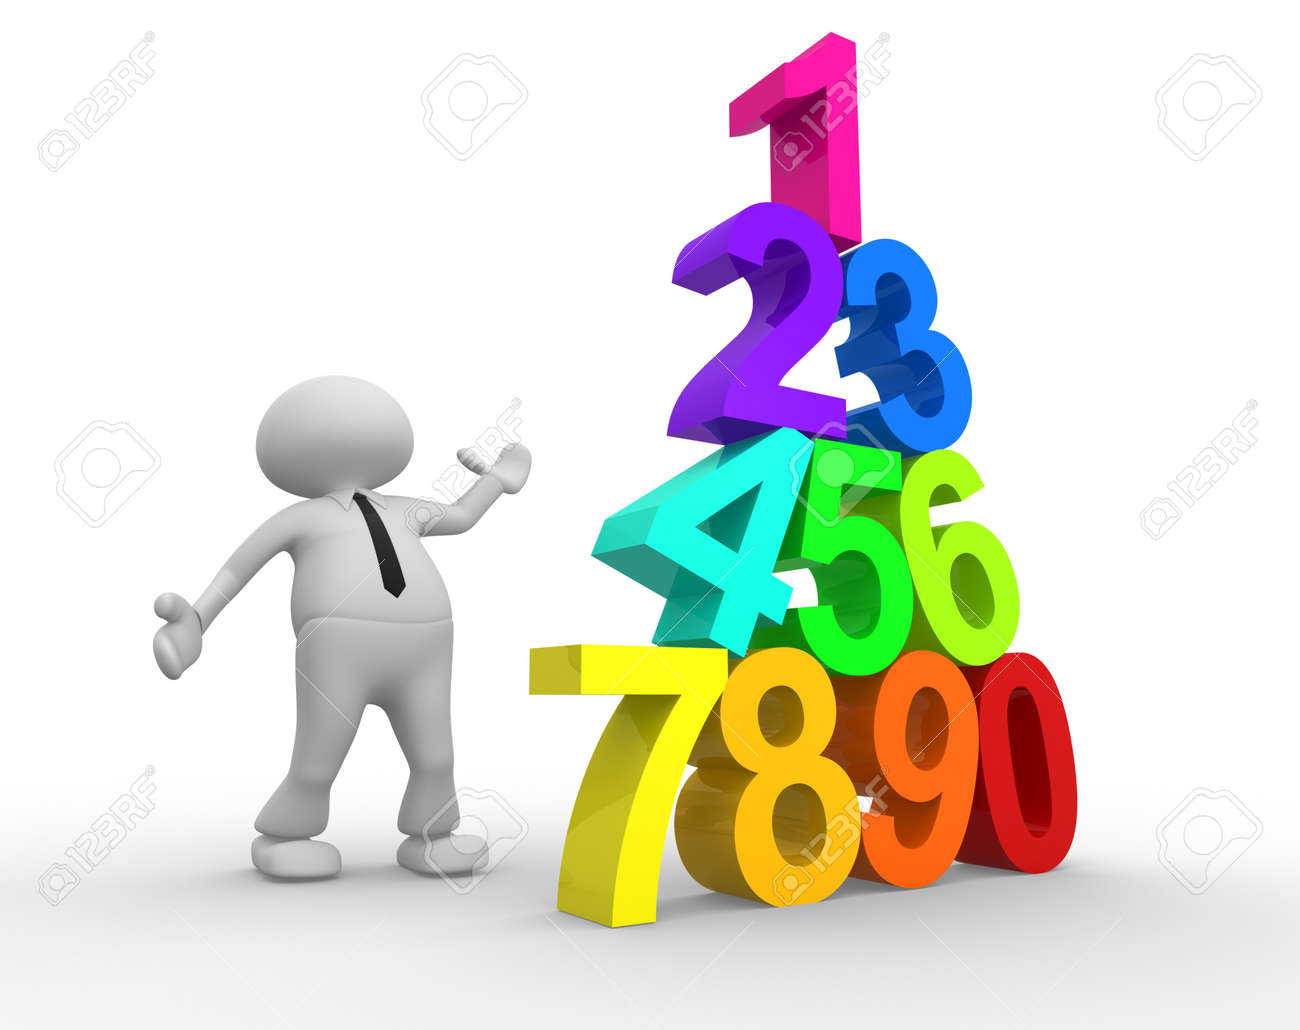 3d people - man, person and pyramid numerals. Stock Photo - 18528542